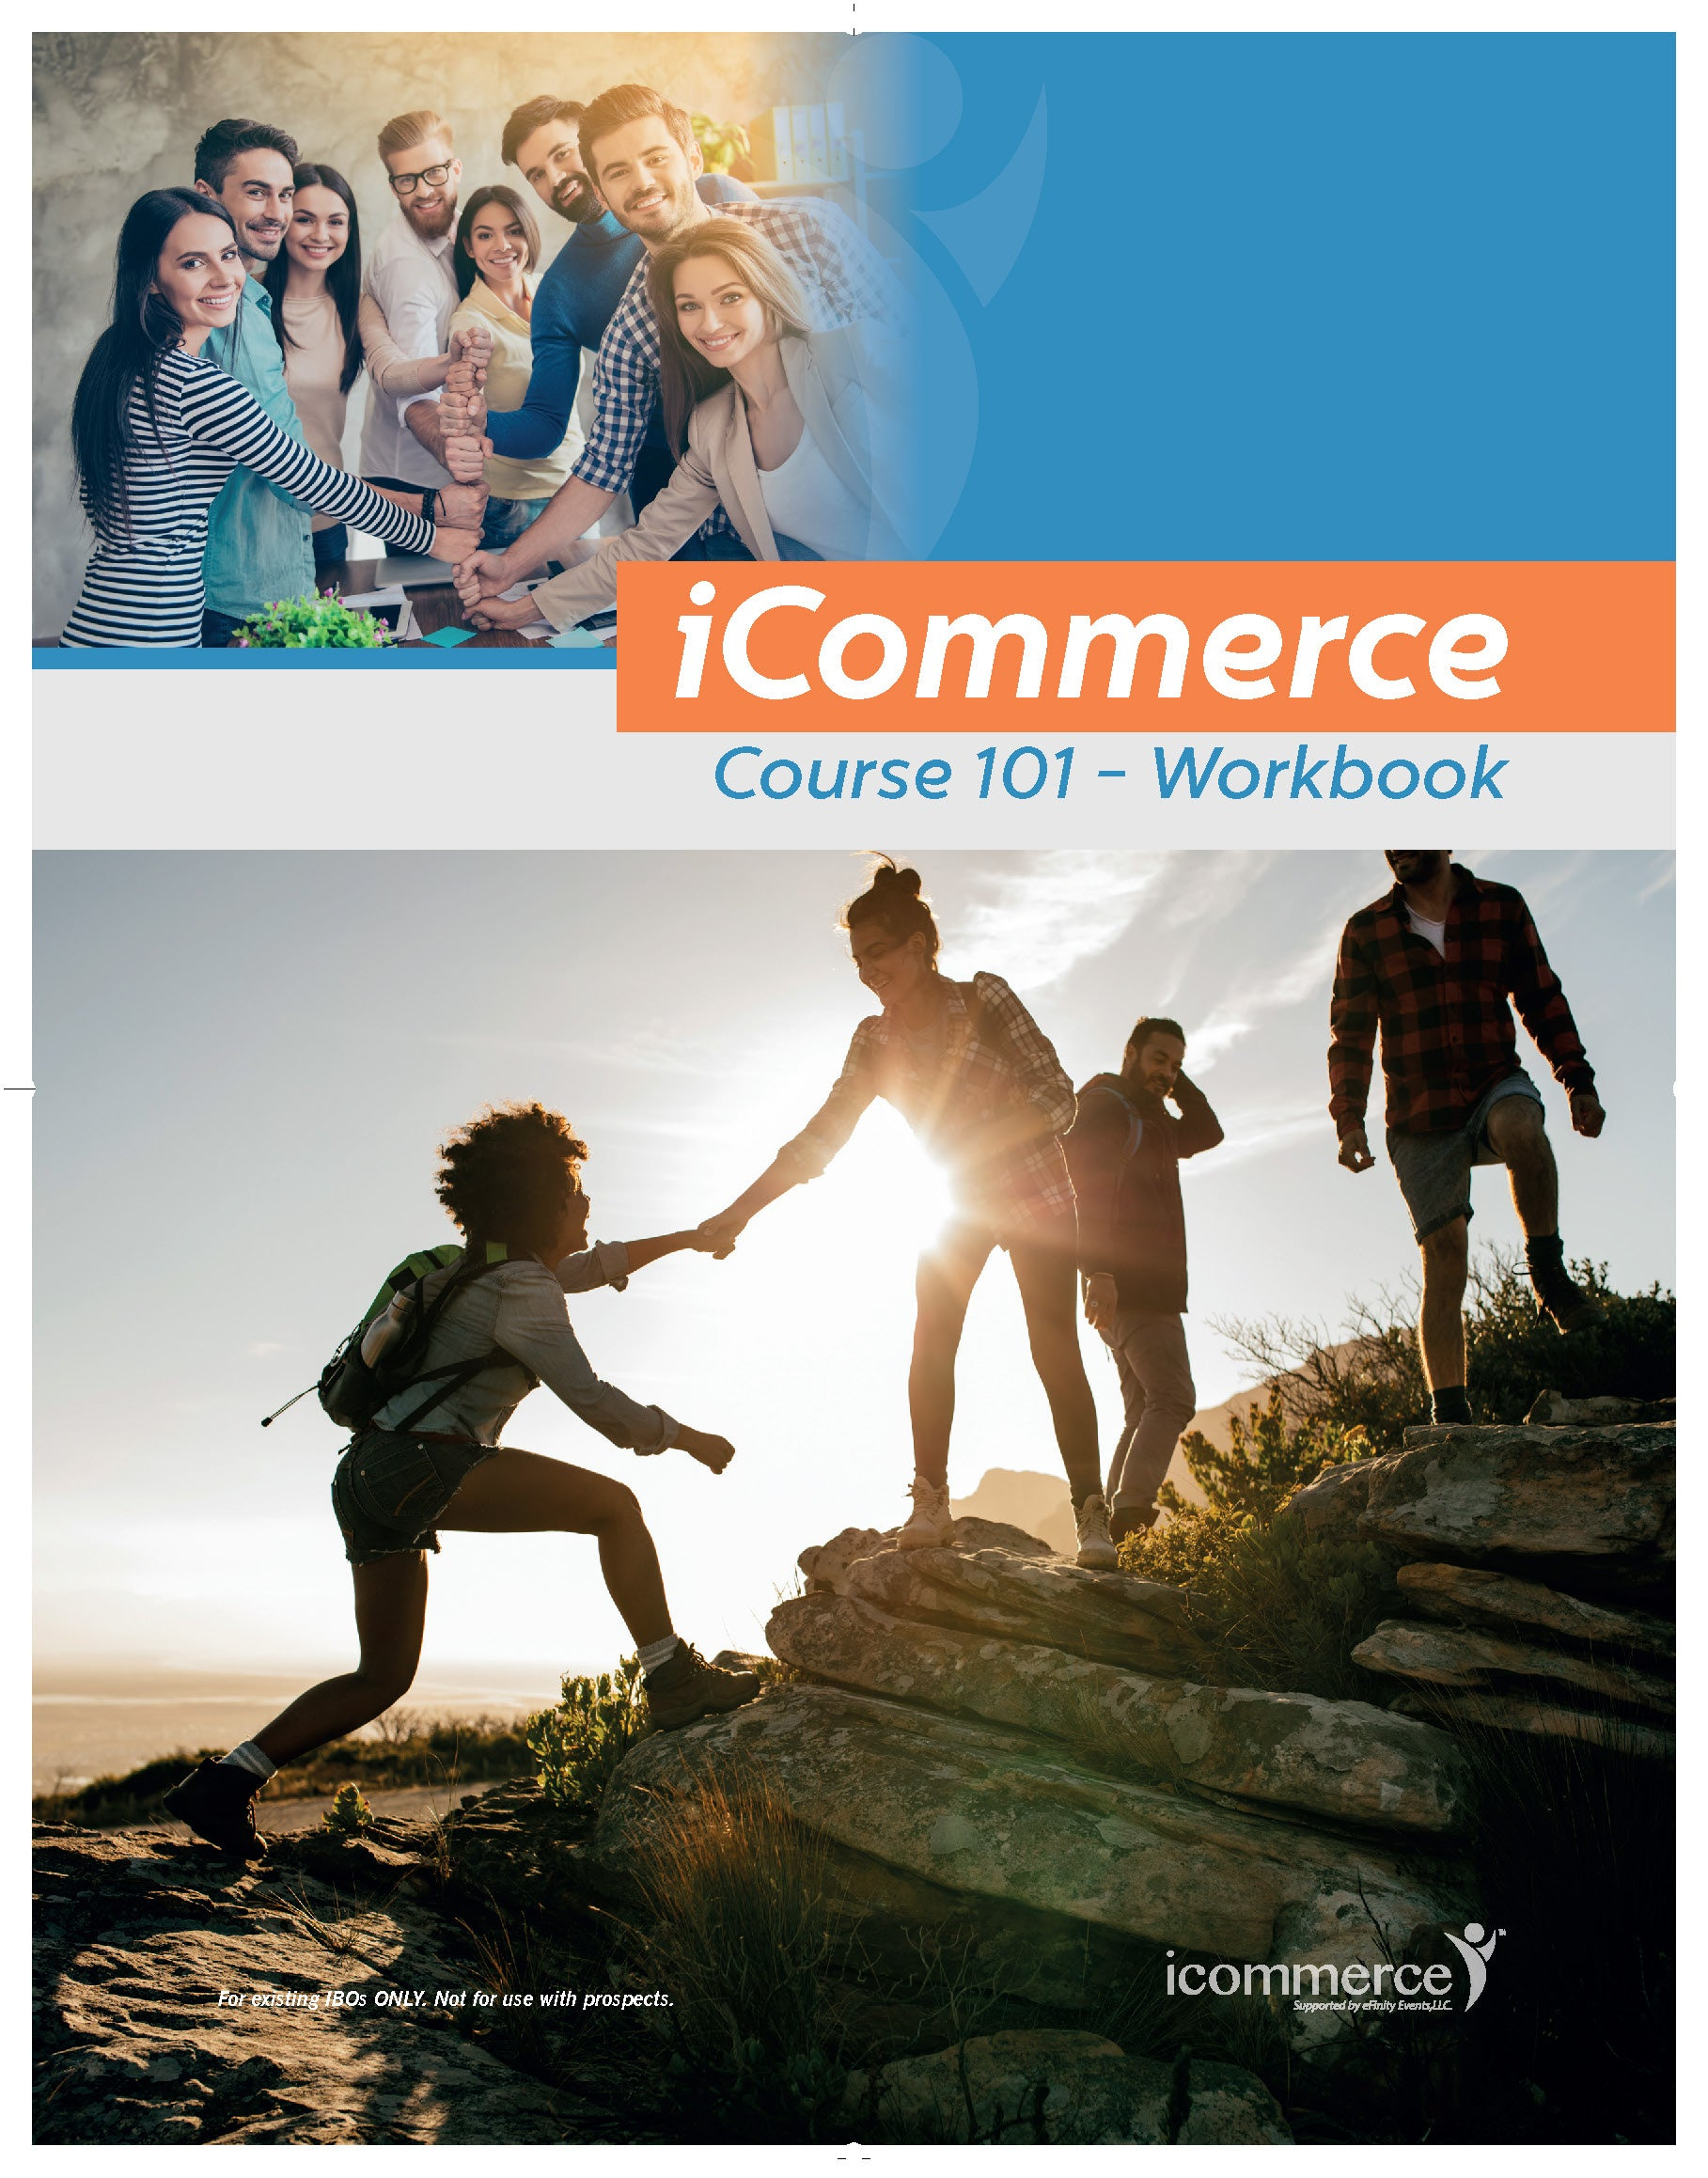 iCommerce Course 101-Workbook